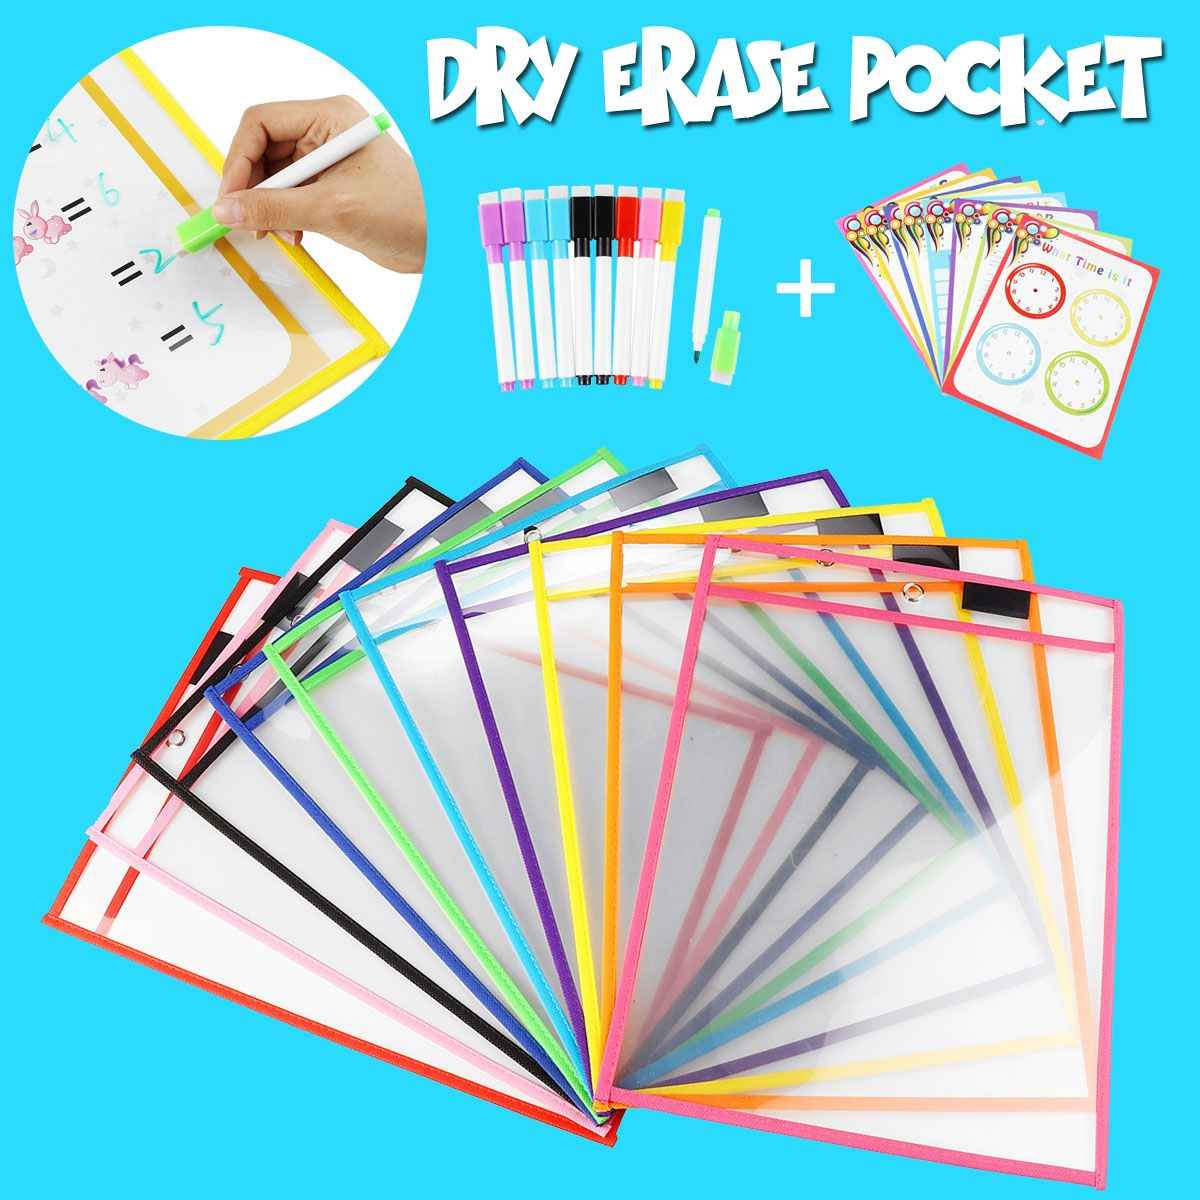 KICUTE 10/20/28pcs Transparent Dry Erase Pocket Reusable With Pens Environmental Protection School Students Kids Practice Tools